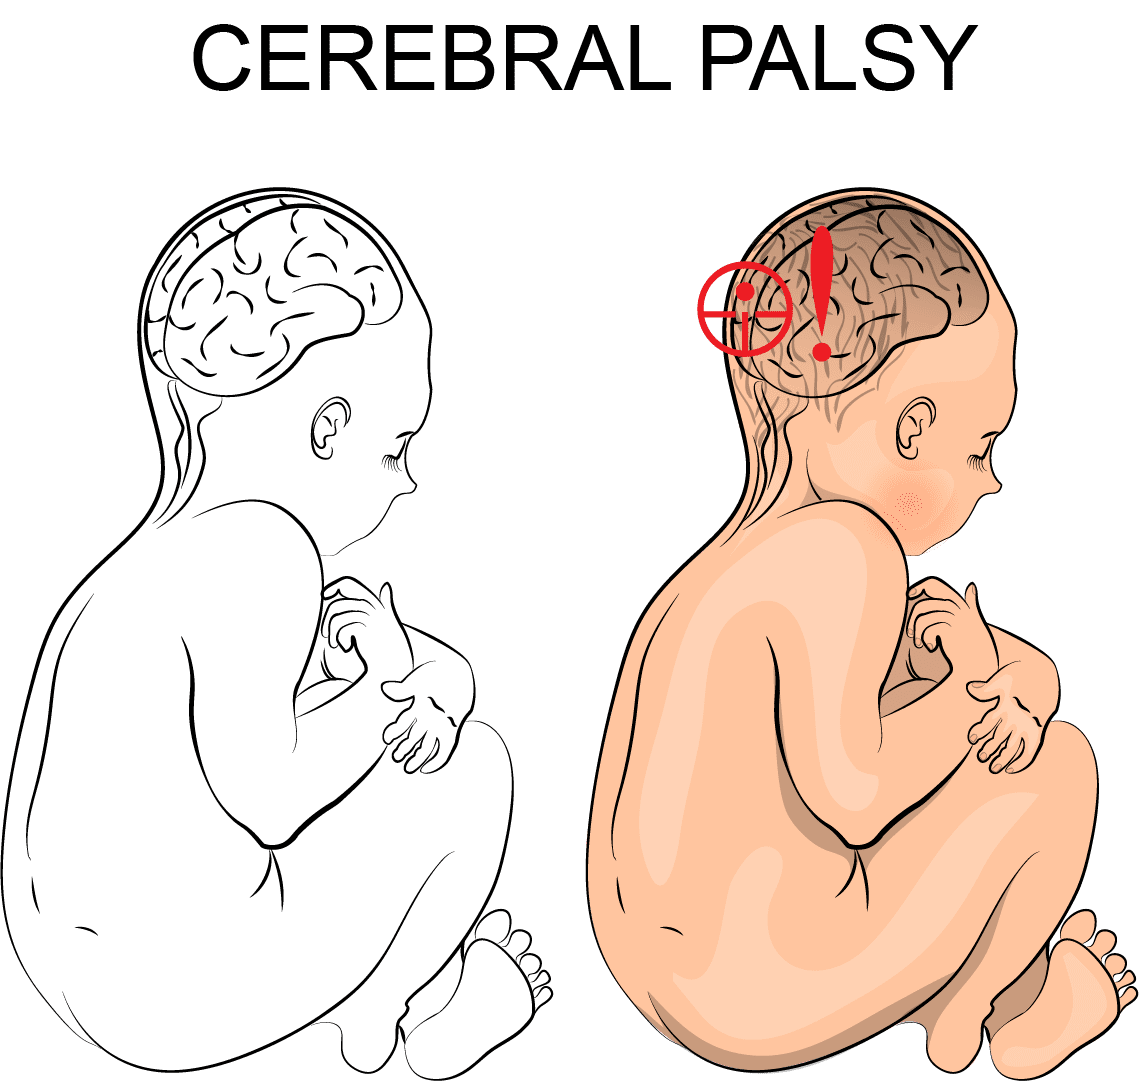 cerebral palsy; neonatal brain damage; CP; birth injury; disability; special needs